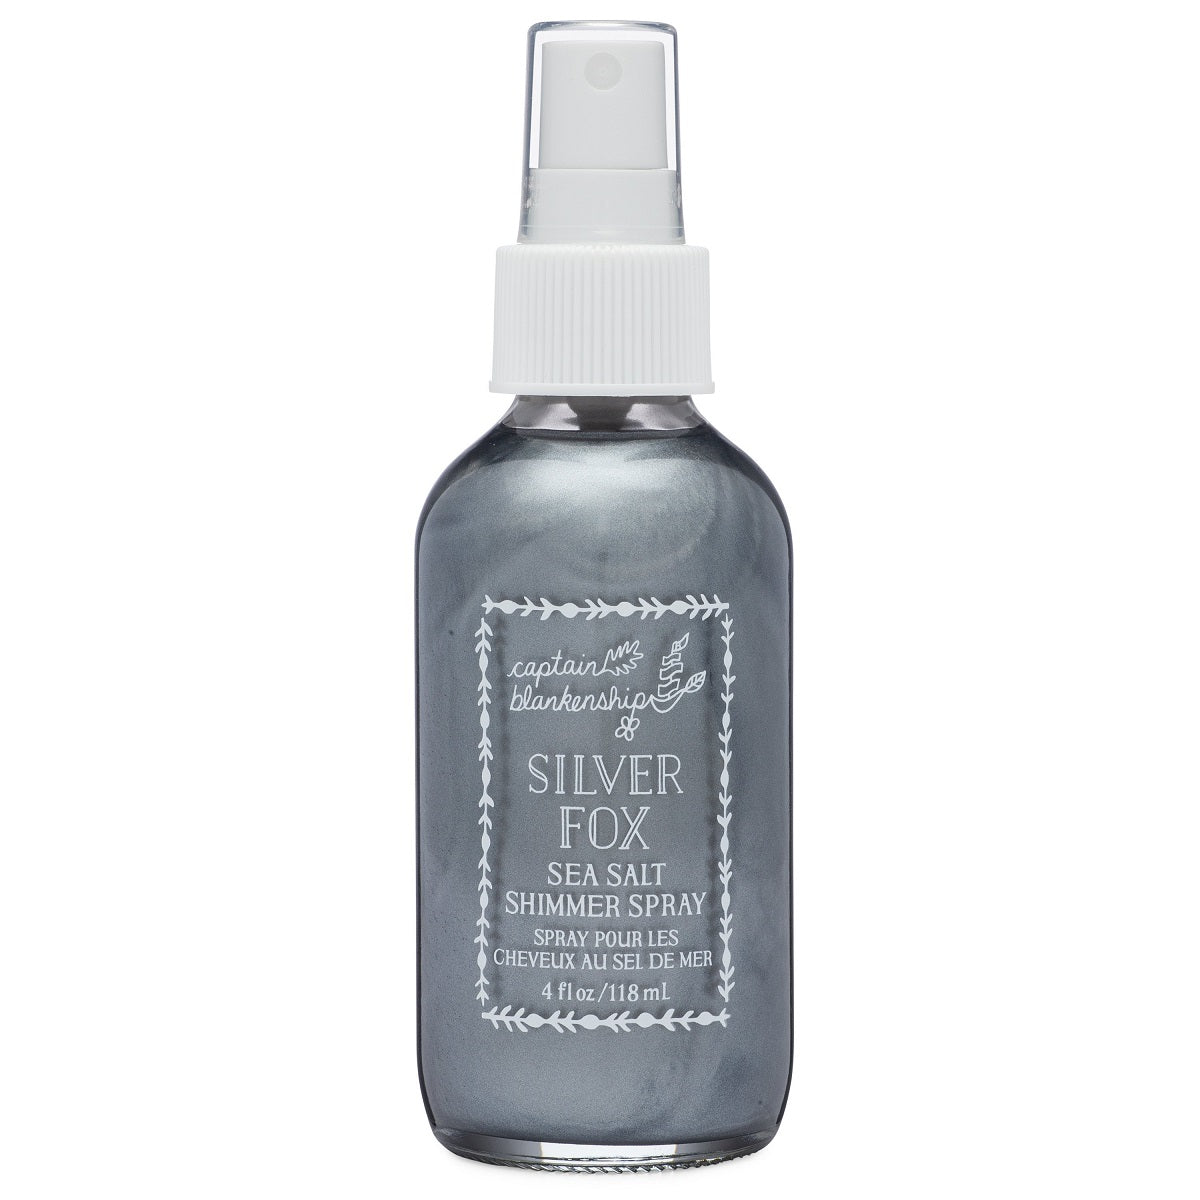 Captain Blankenship - Silver Fox Sea Salt Shimmer Spray (4 oz)